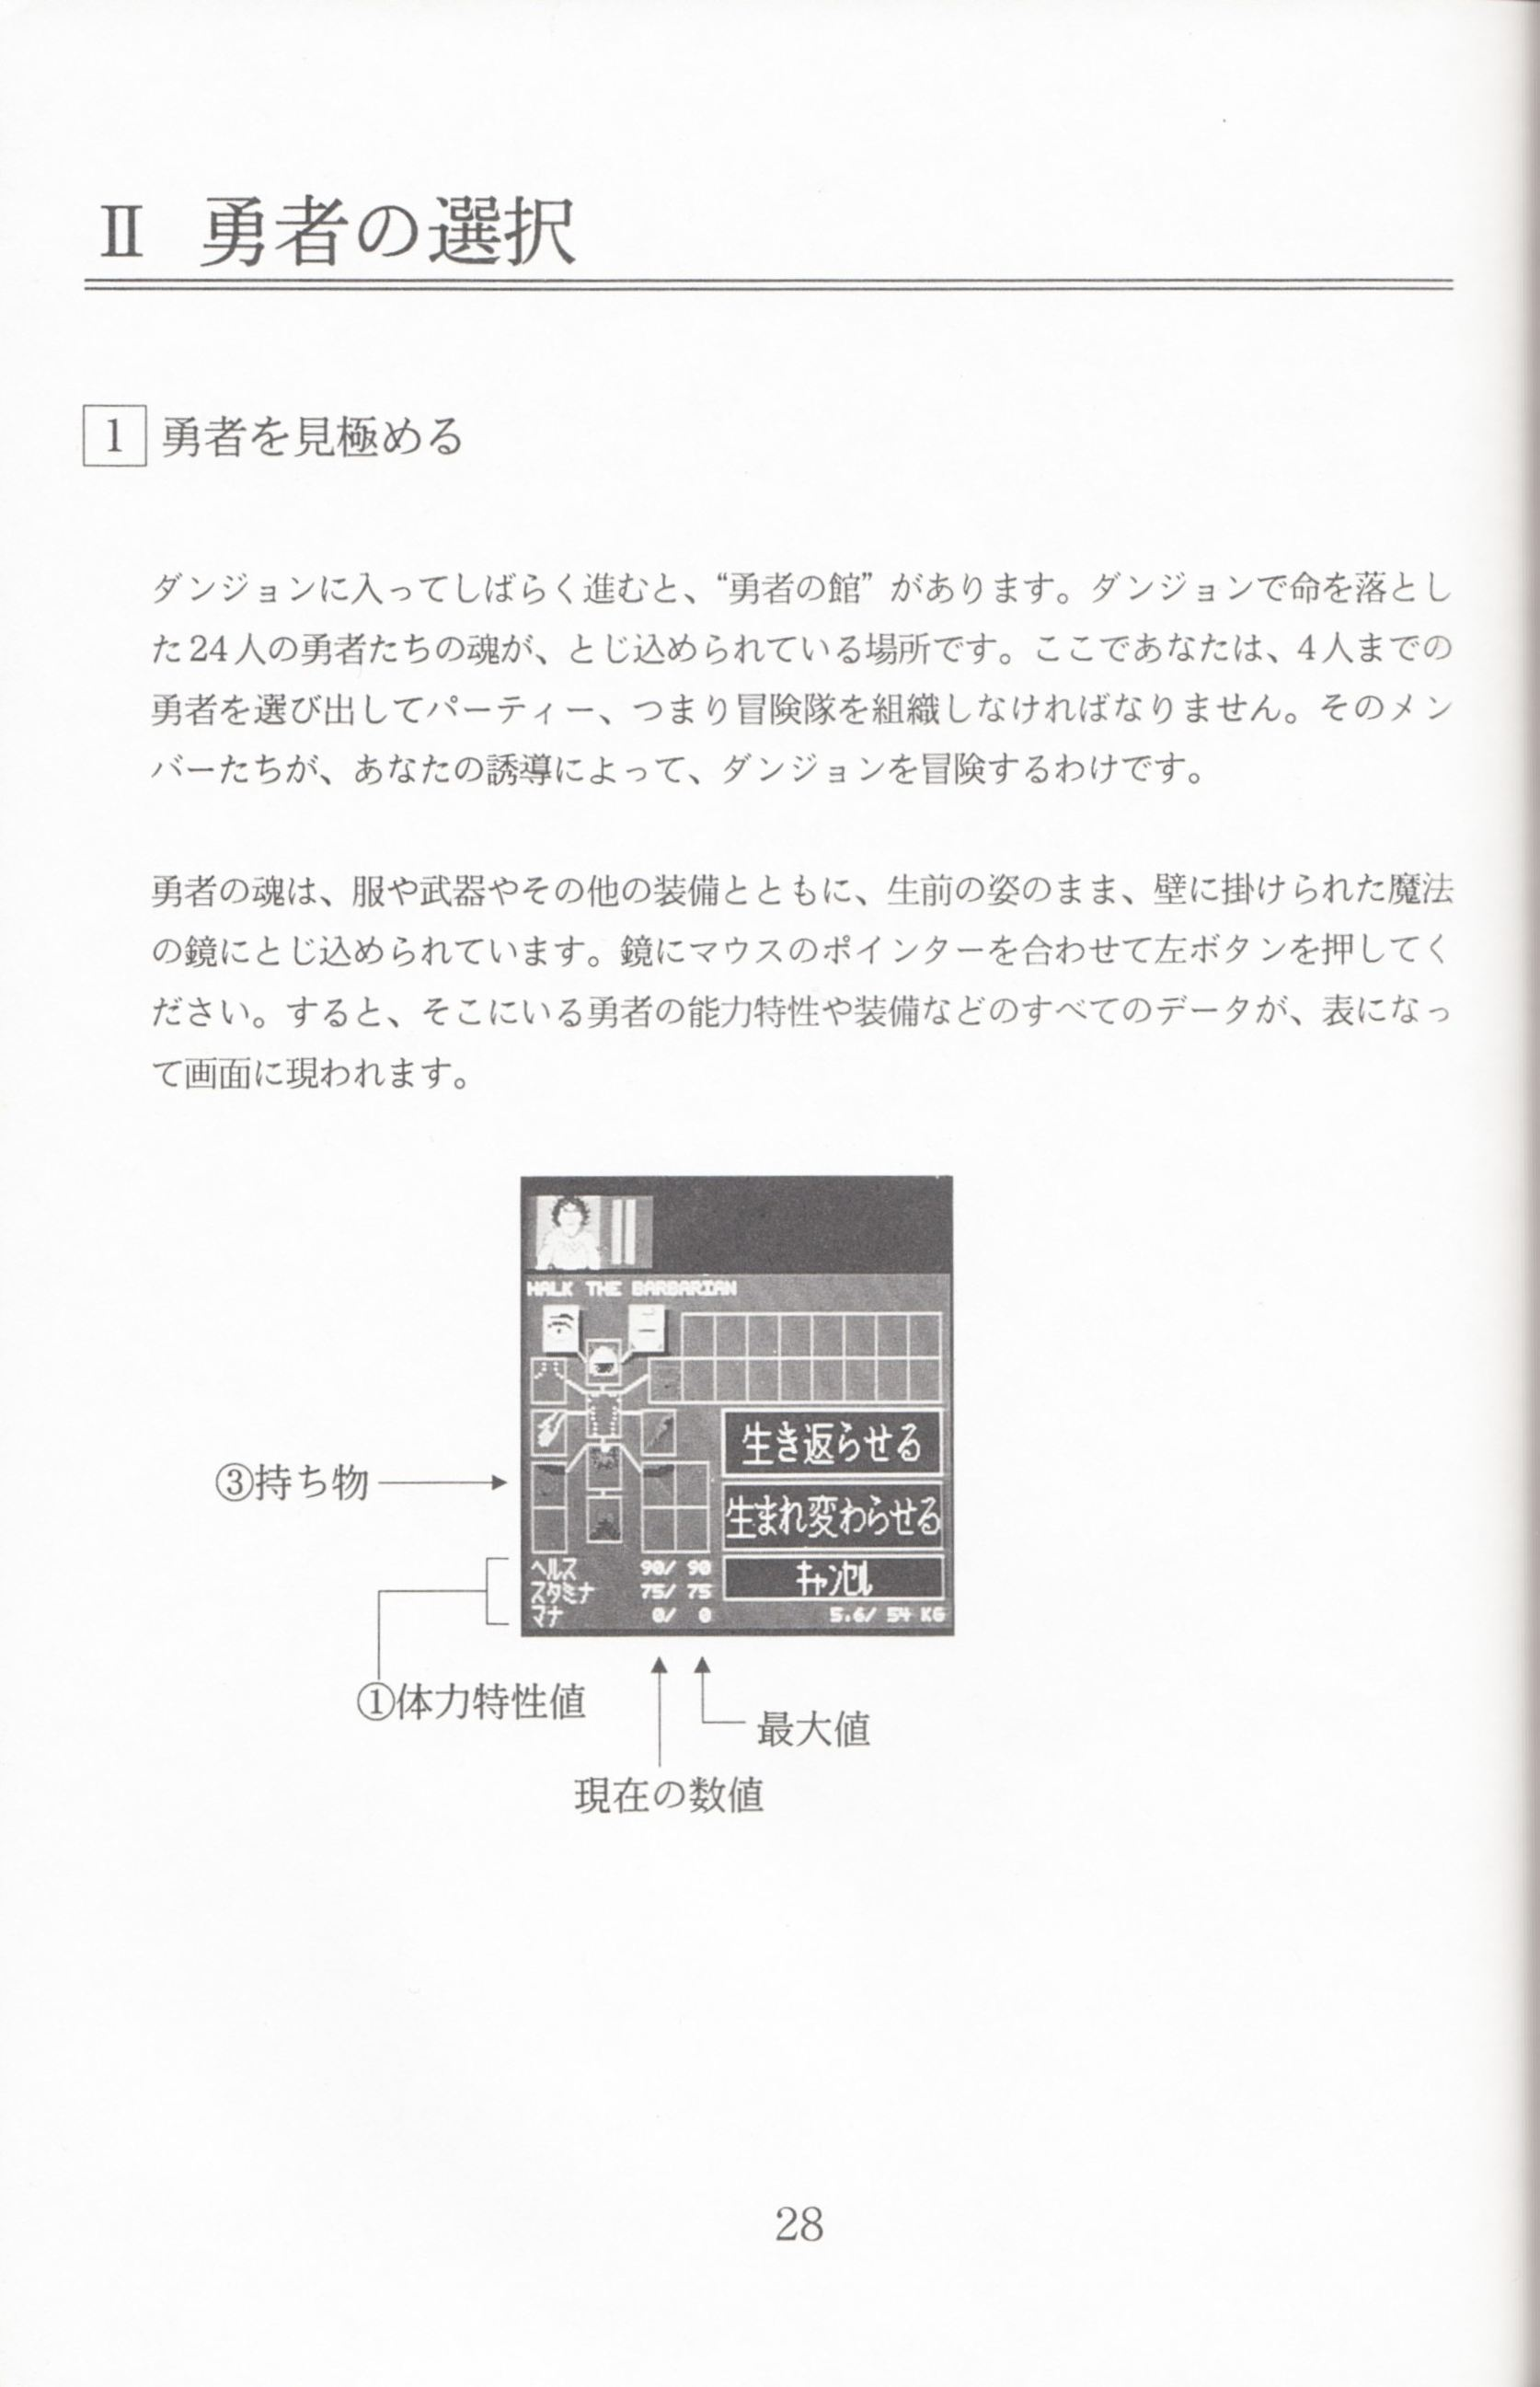 Game - Dungeon Master - JP - PC-9801 - 5.25-inch - Manual - Page 030 - Scan